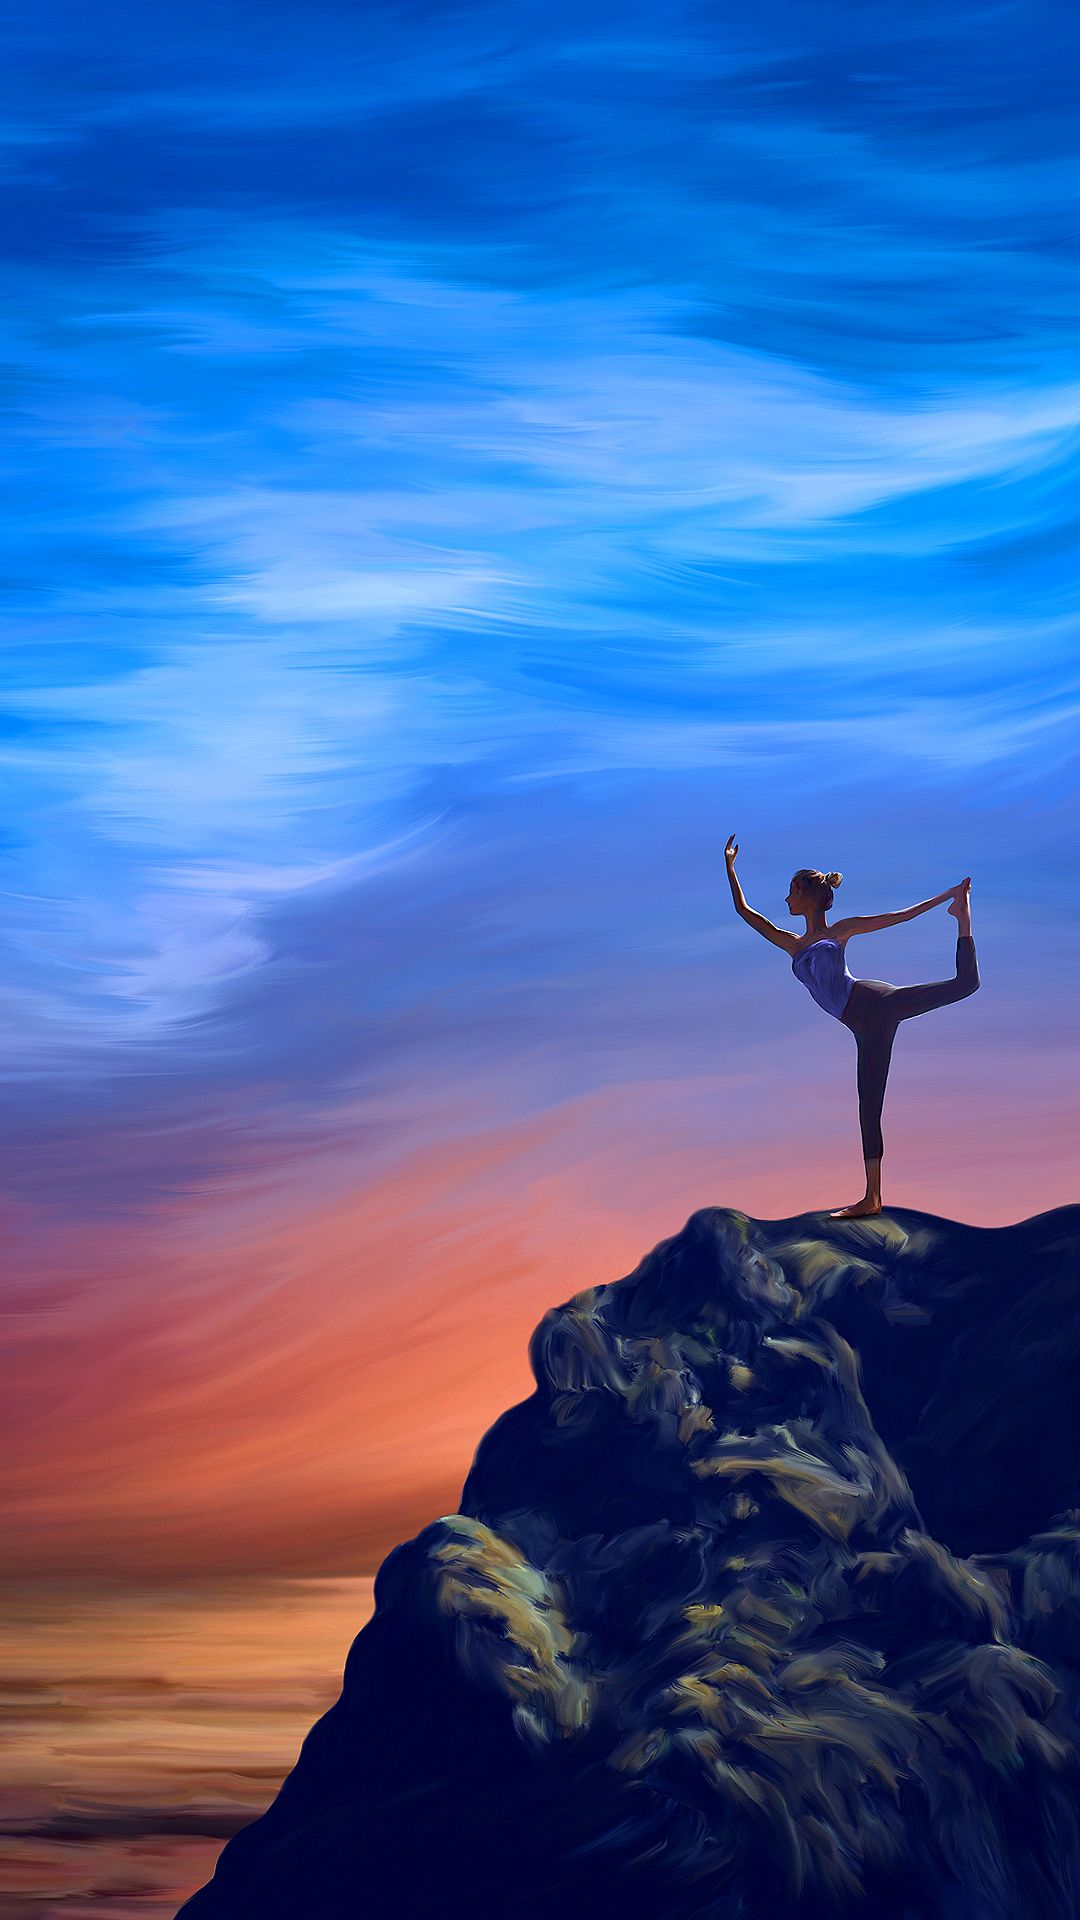 Yoga Wallpaper For Mobile Devices Artwork By Goodvibesgallery Com